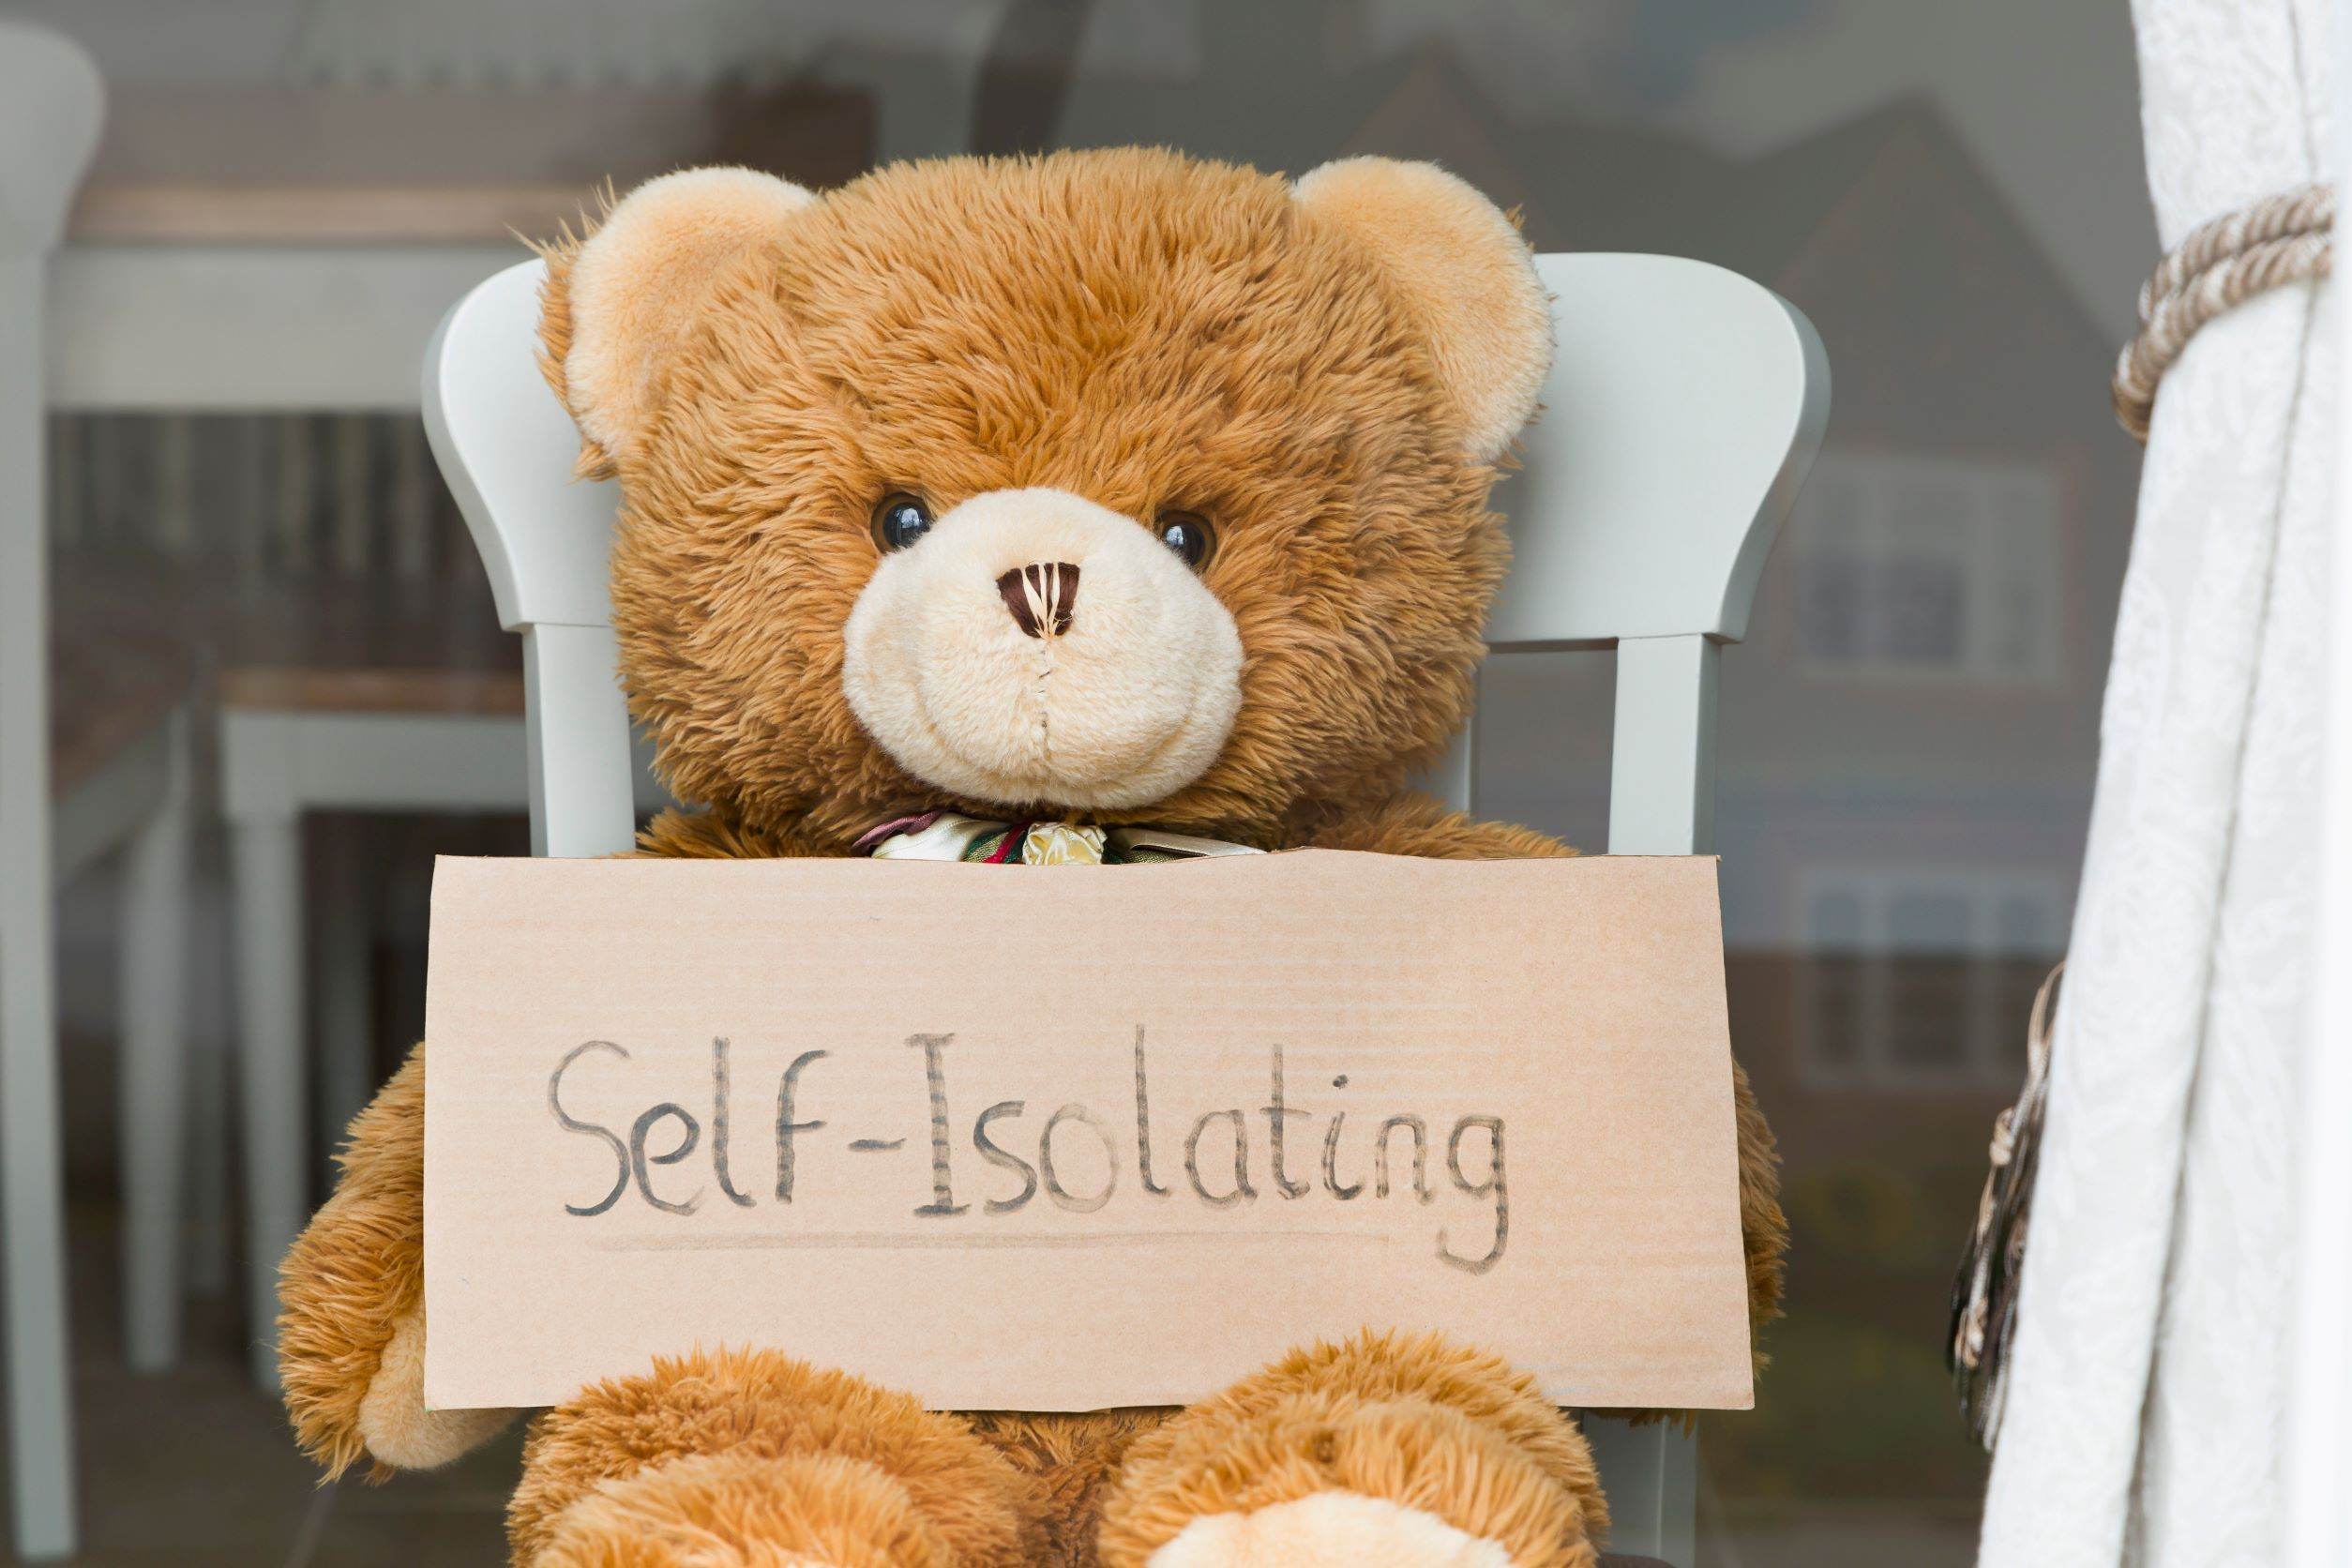 International students: your guide to making the most of self-isolation